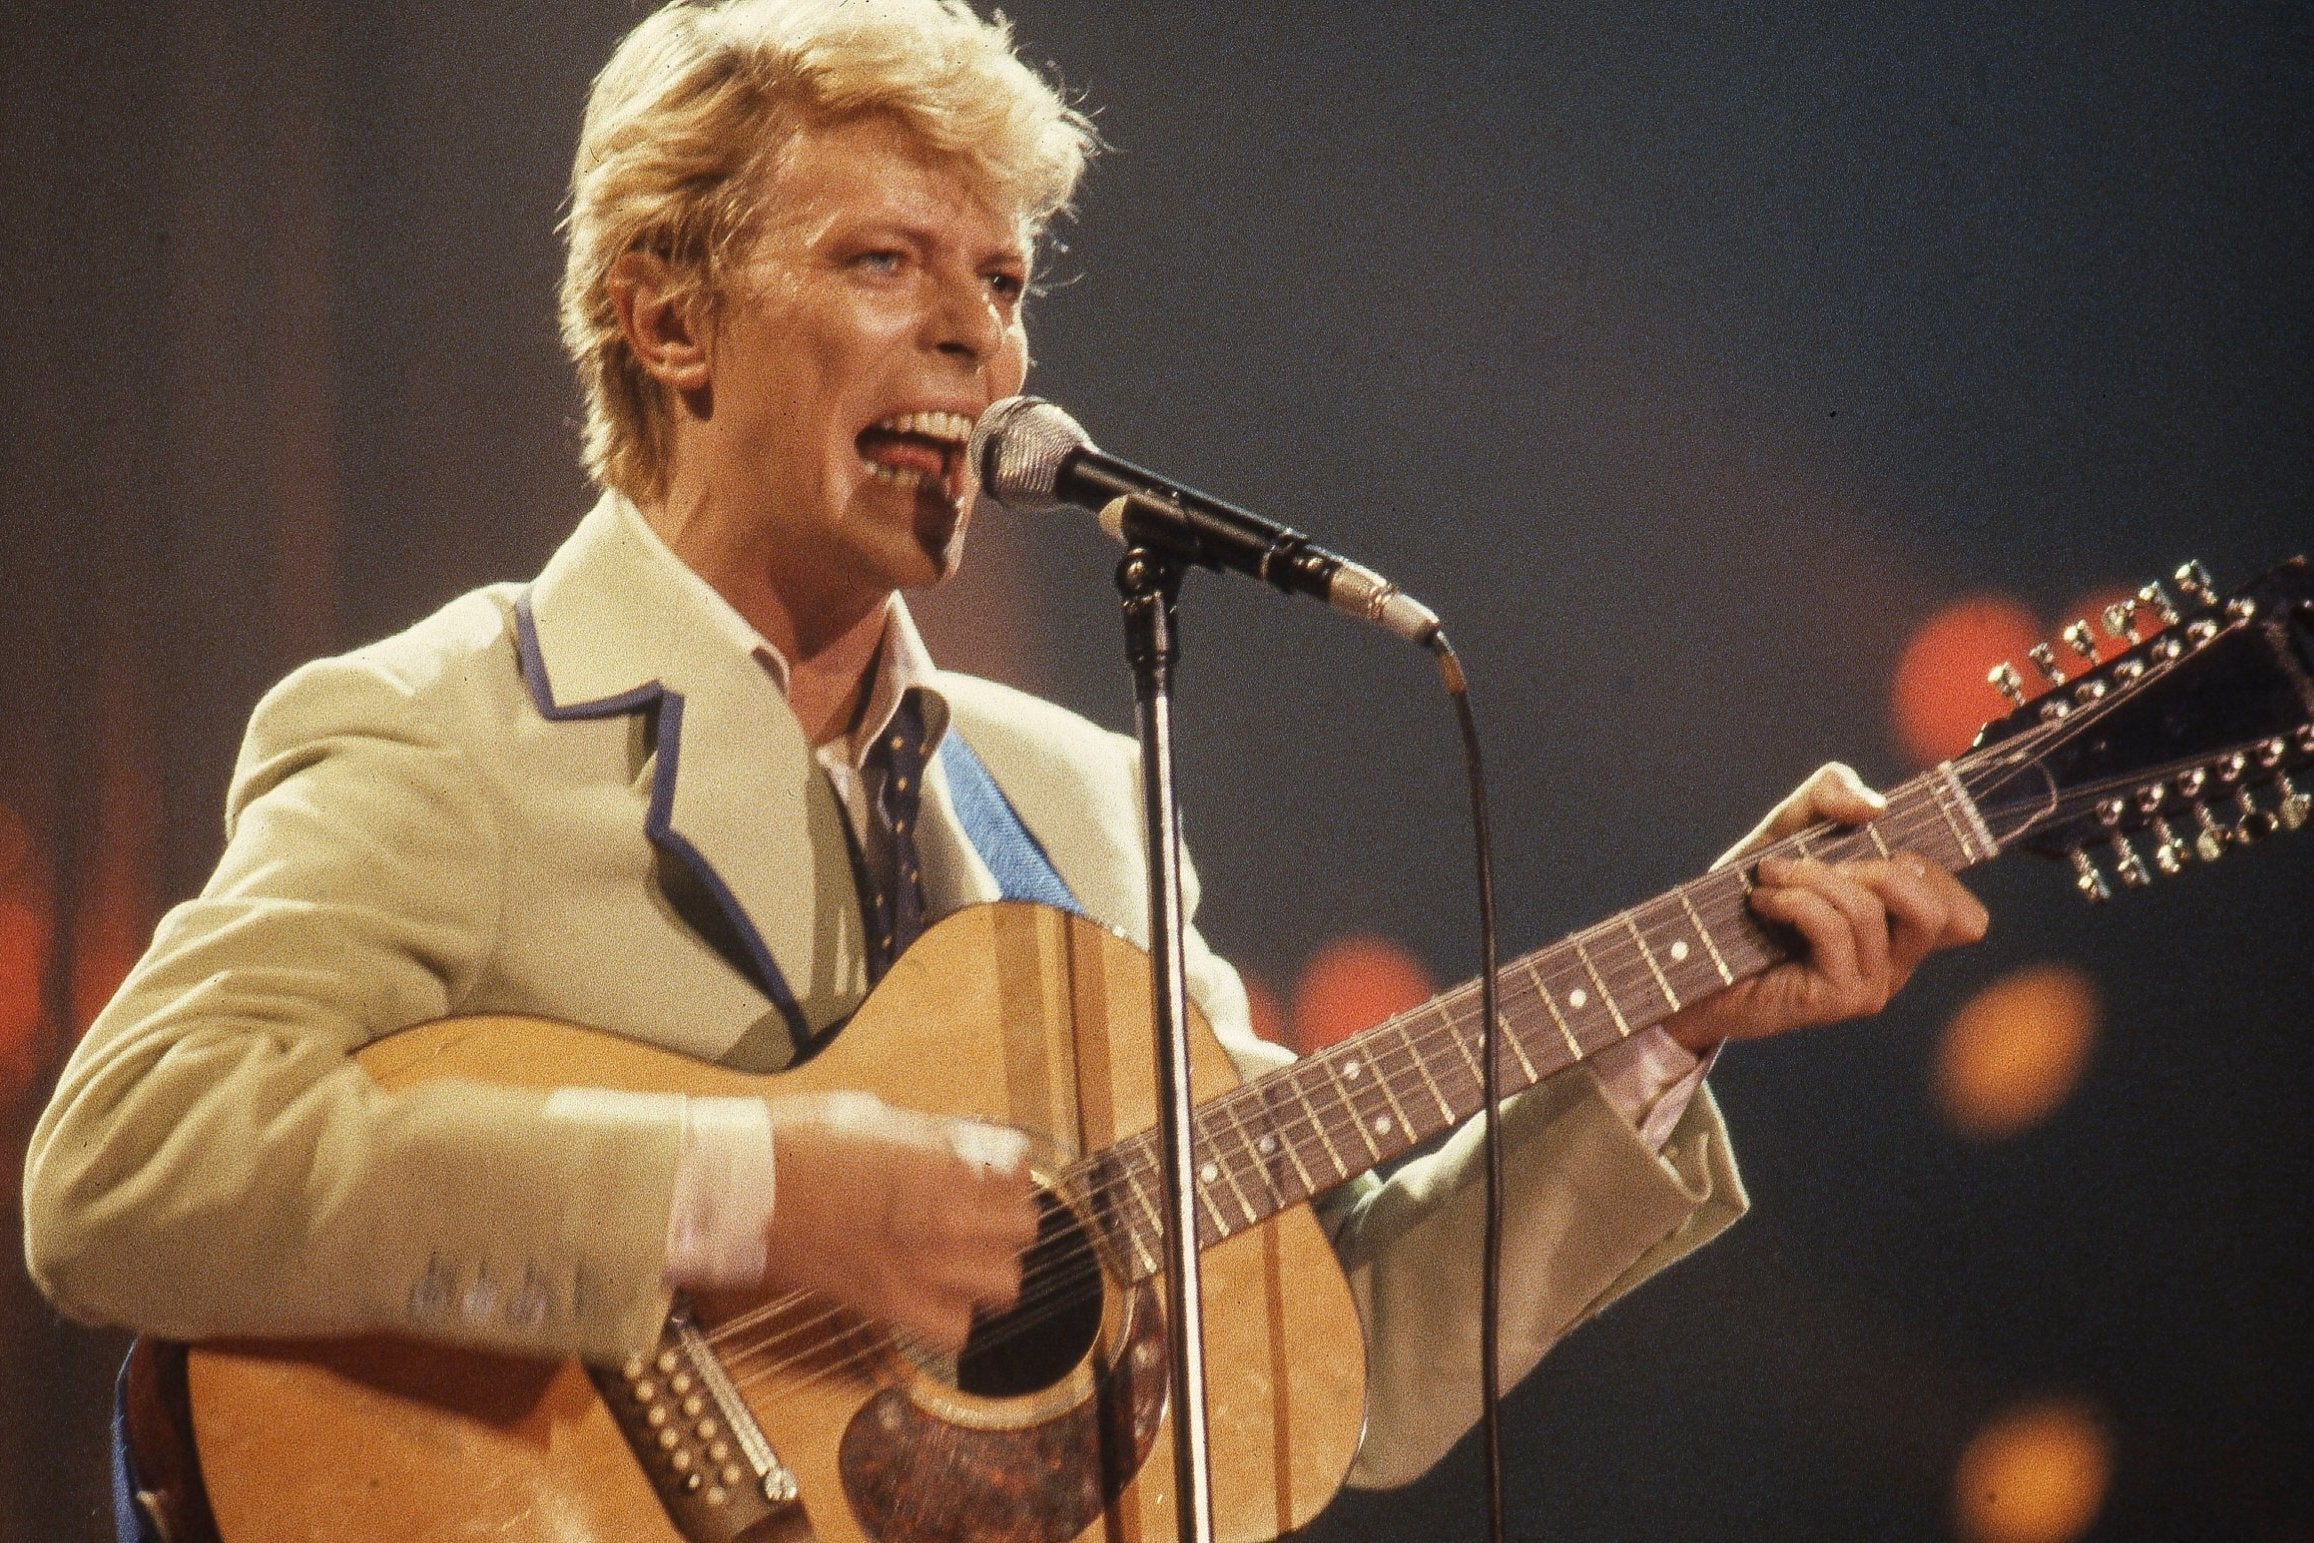 David Bowie box set 'Spying Through a Keyhole' to feature